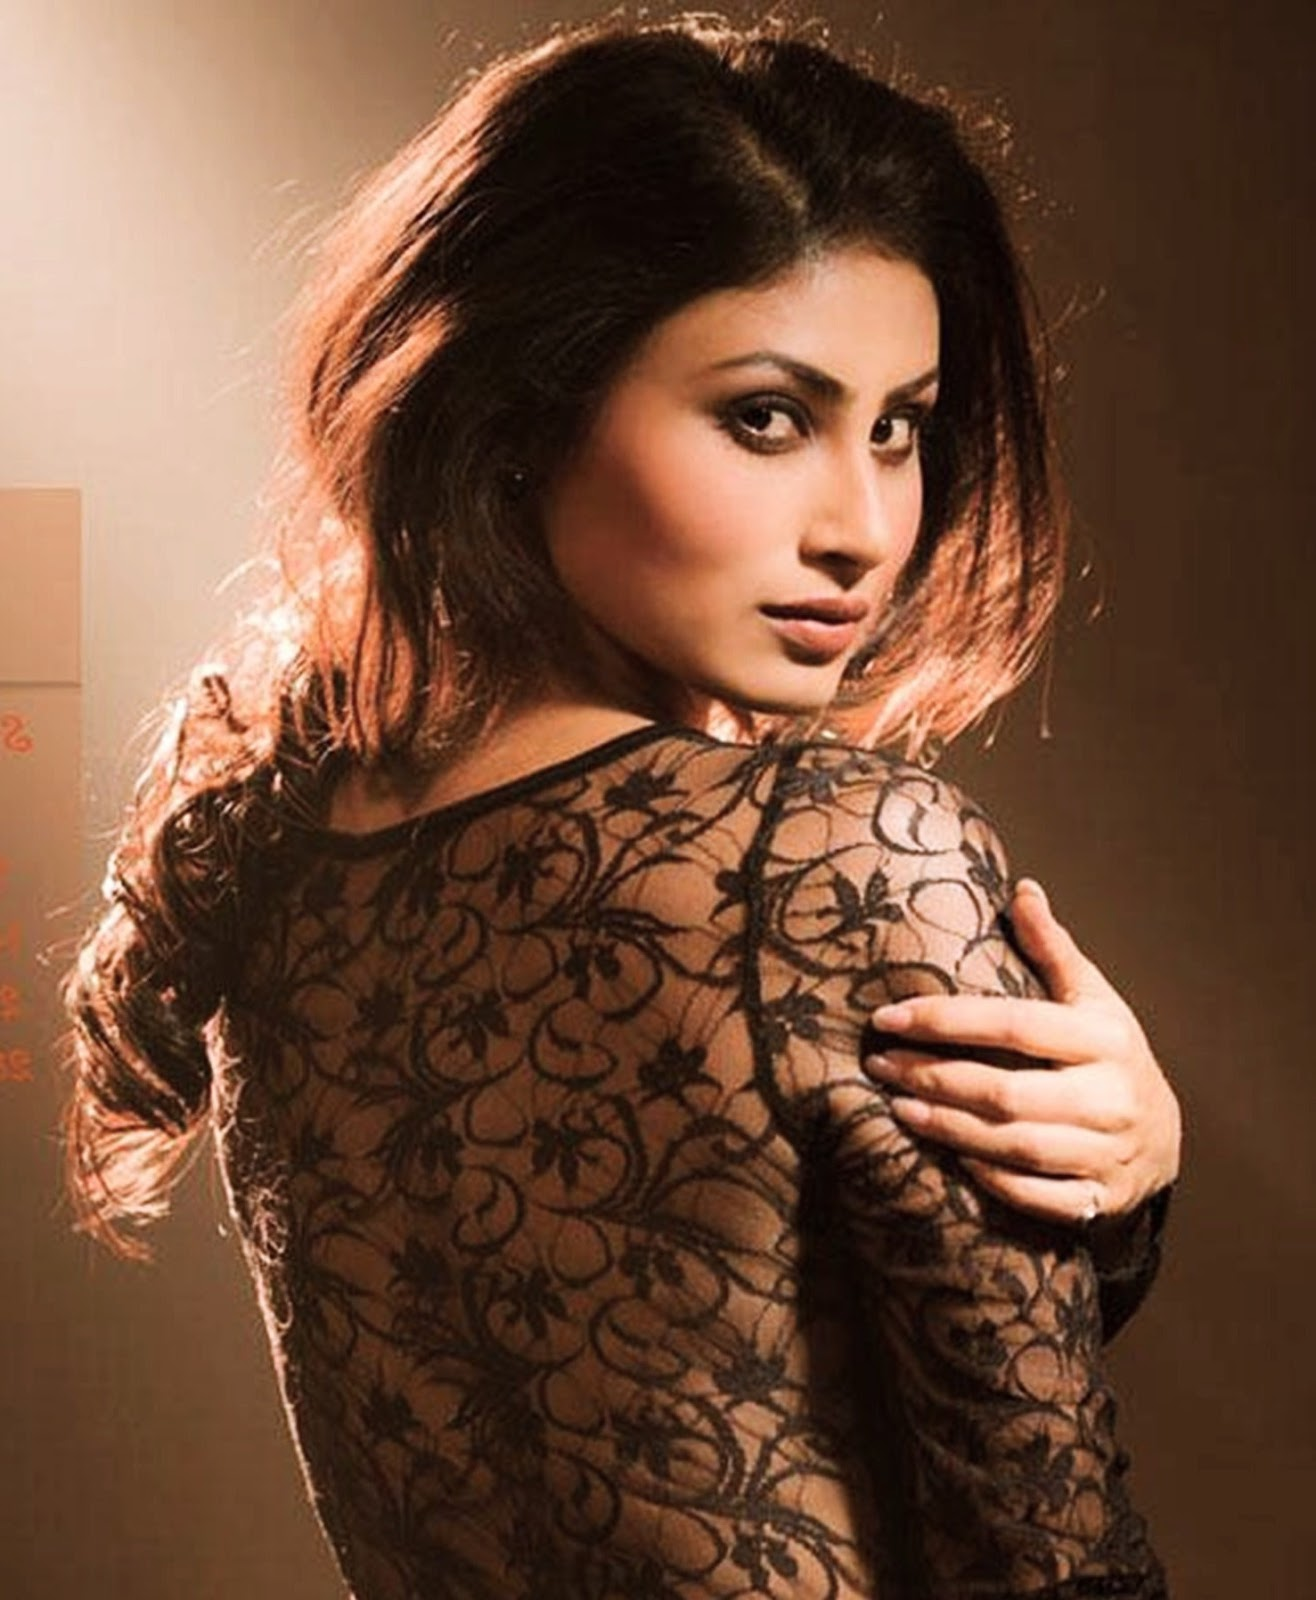 latest mouni roy hot wallpaper images pic photos for pc